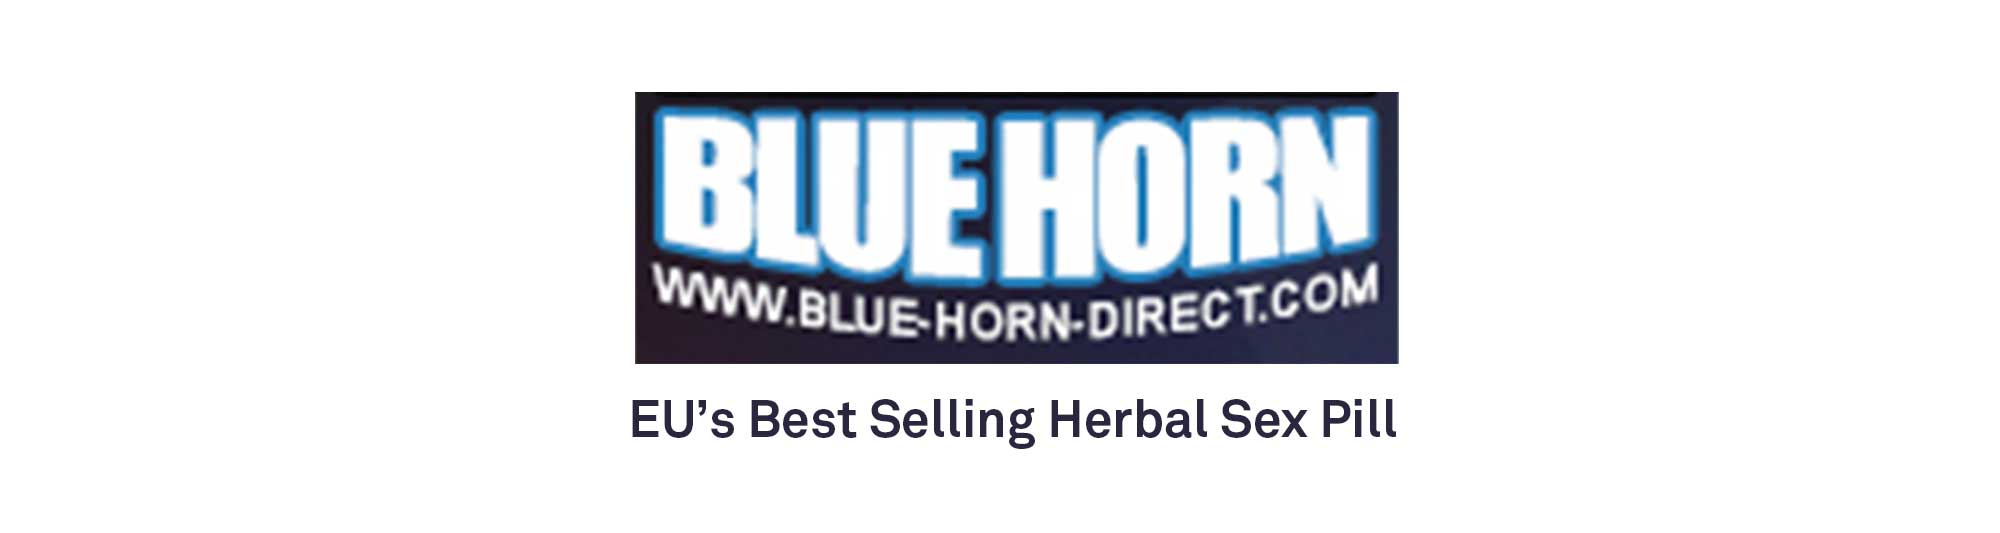 blue-horn-direct-banner-plain